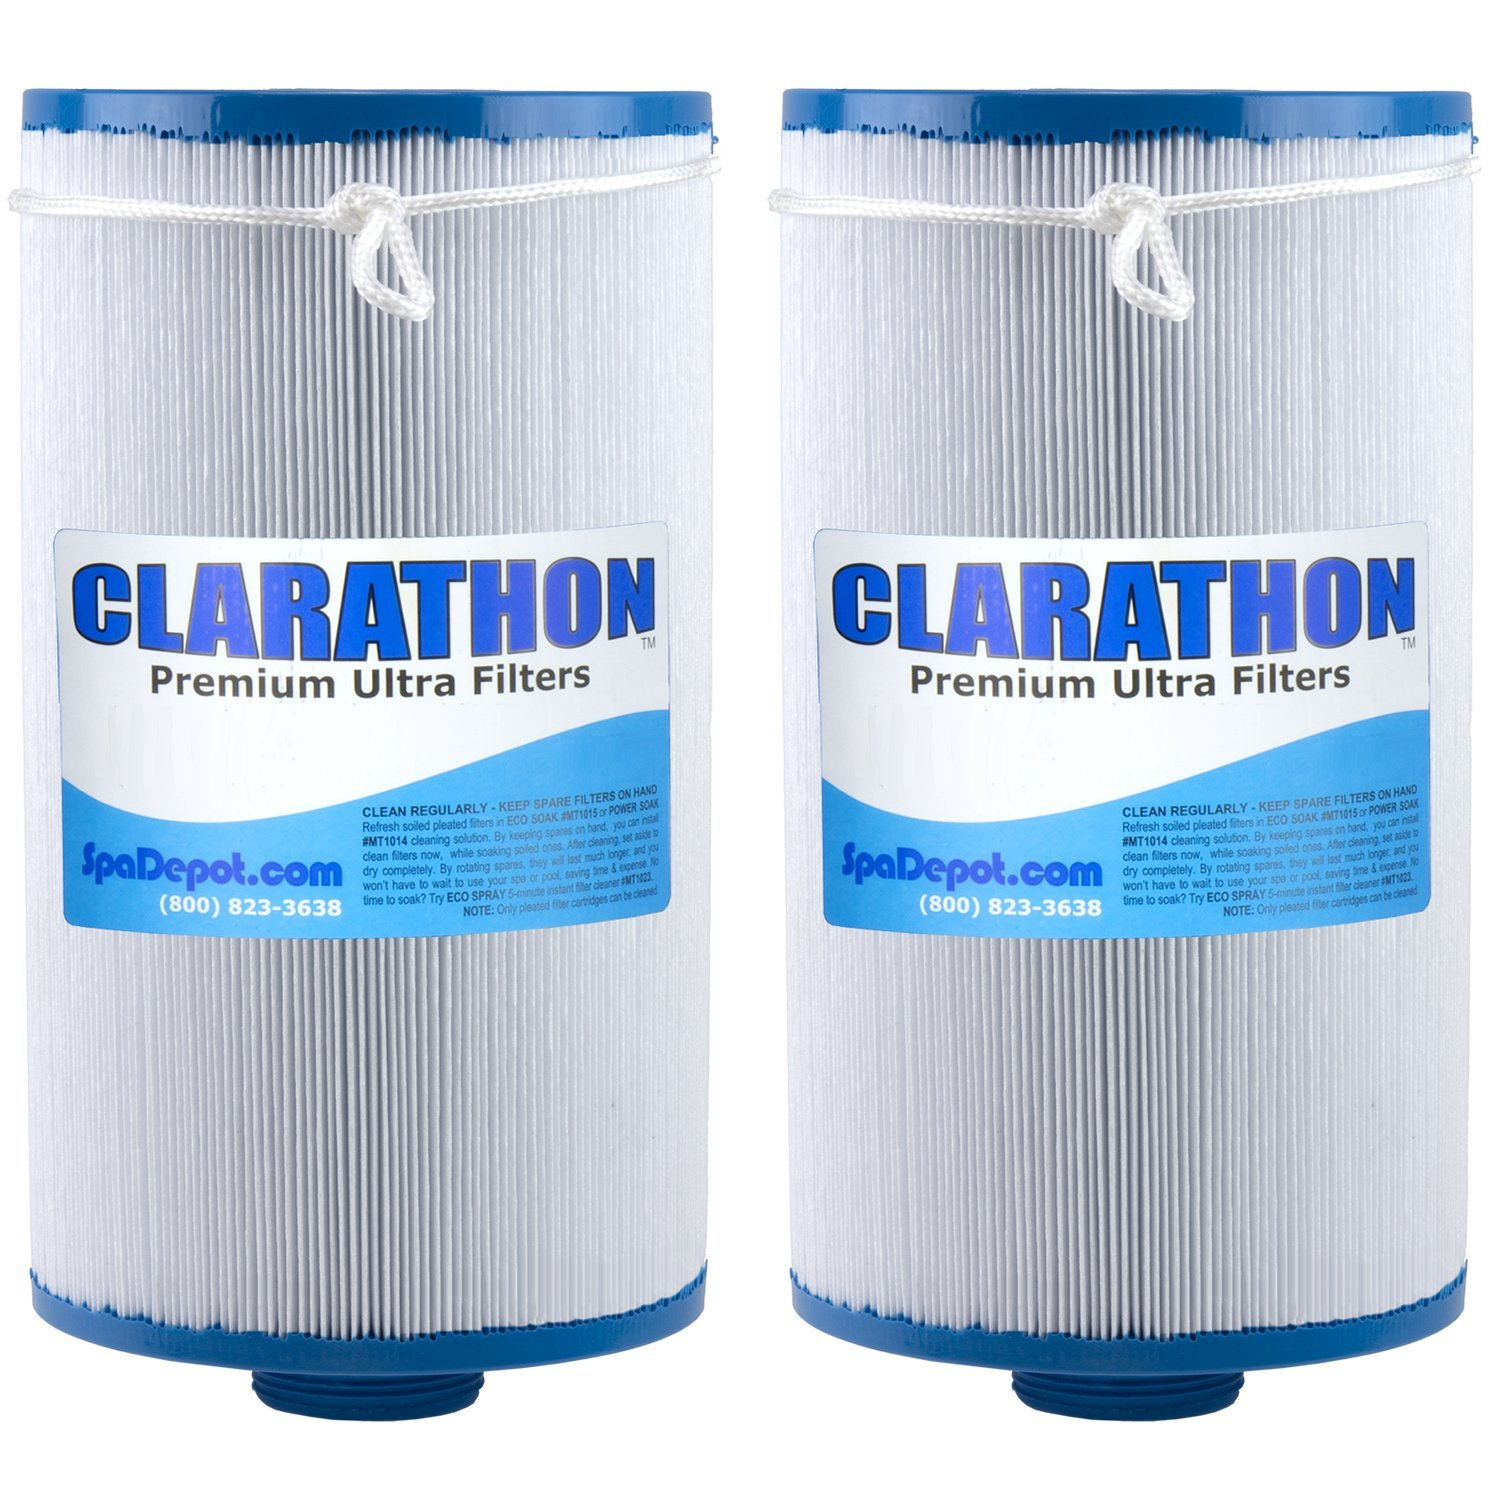 2 Replacement Filters for Lifesmart, Freeflow, AquaTerra, Hydromaster, Grandmaster, Simplicty, Bermuda Spas - 50SF [2-PACK] by Clarathon